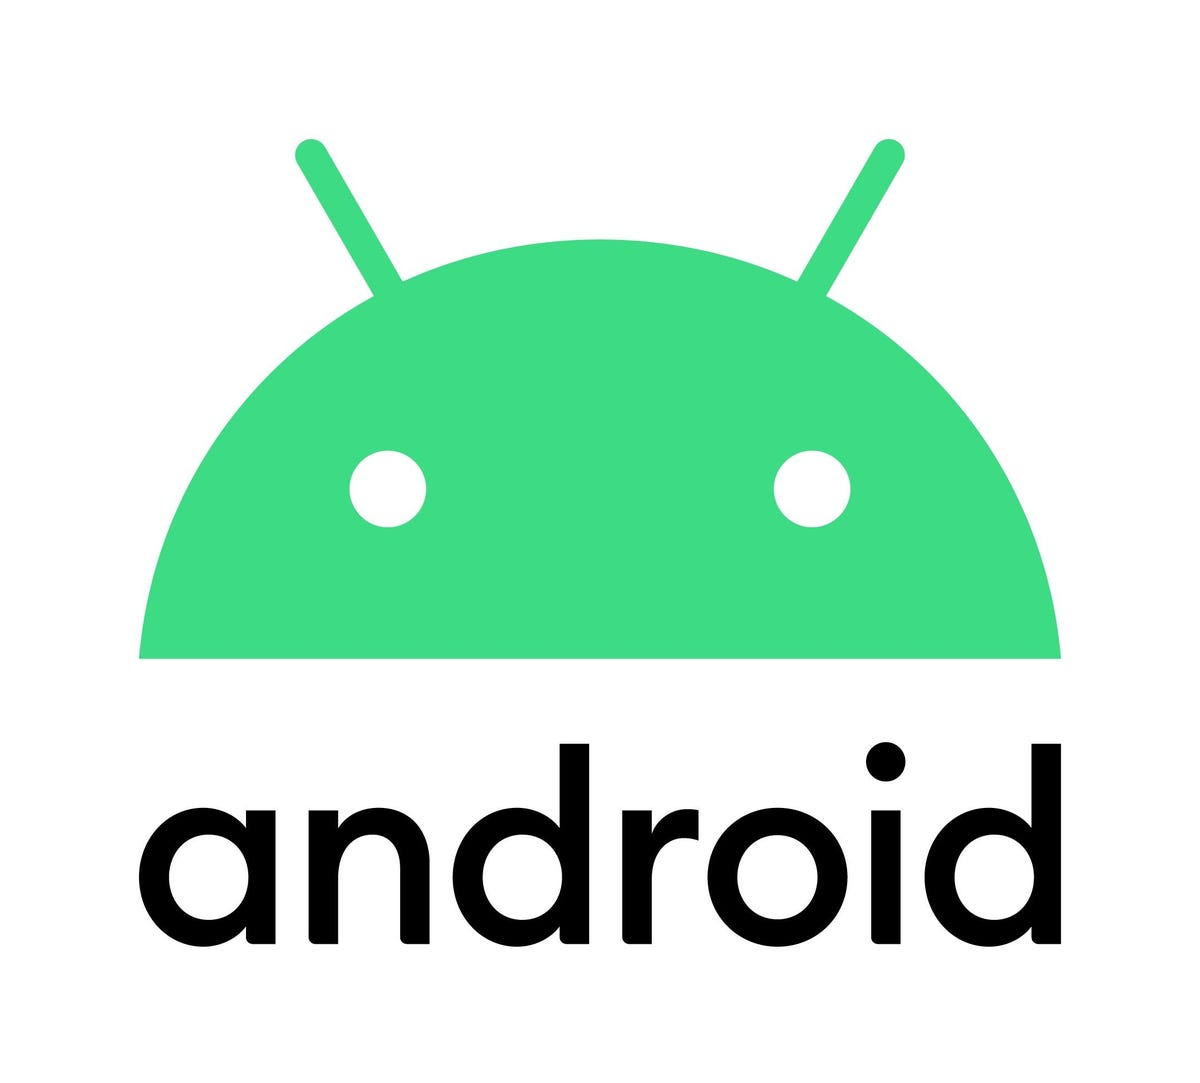 android-logo-stacked-rgb.jpg